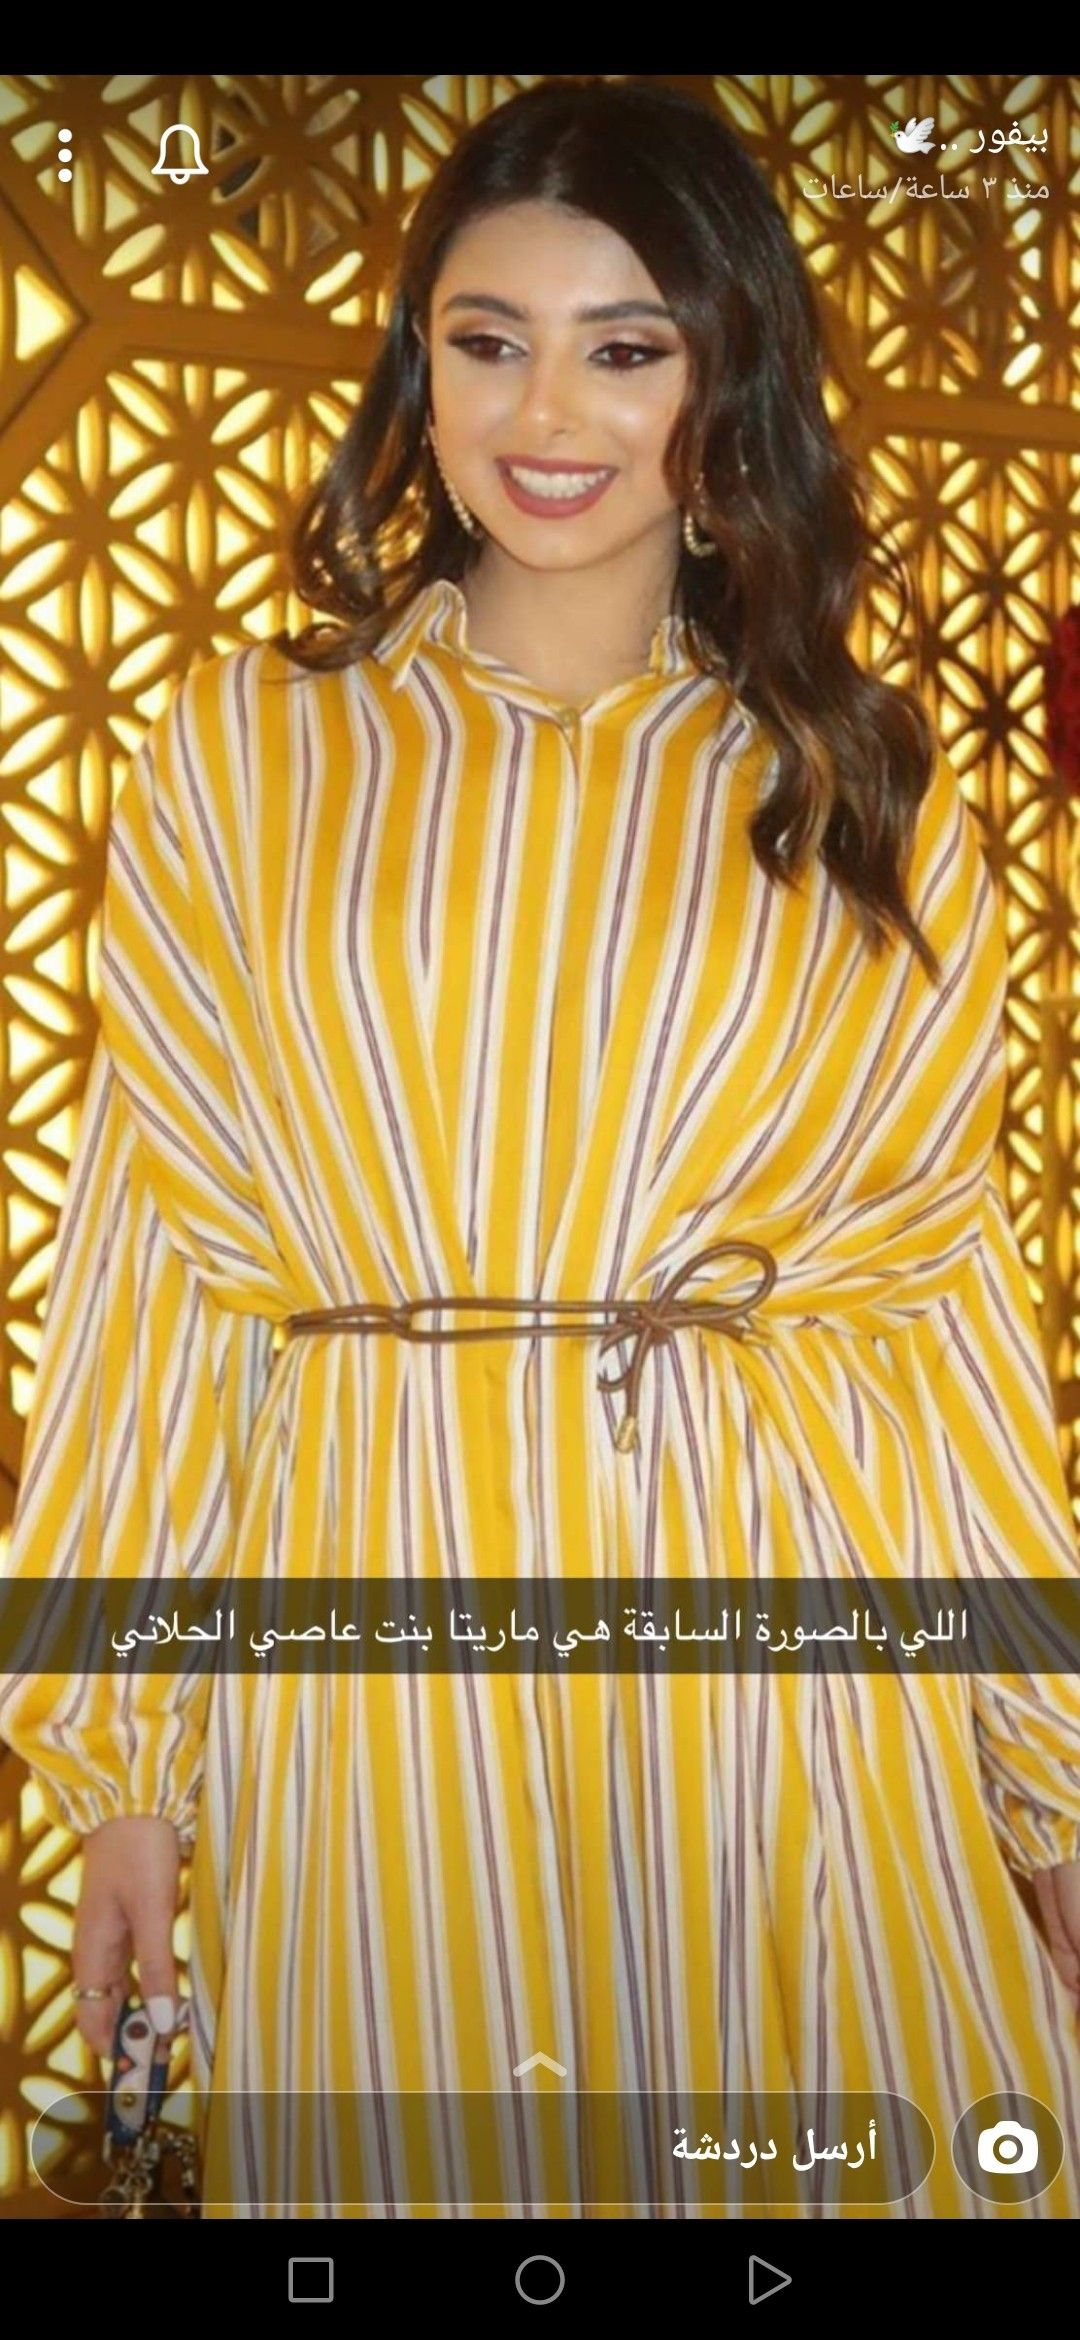 Pin By Sana Azhary On Elegant Clothes Jewellery Accessories In 2020 Elegant Outfit Women Striped Top